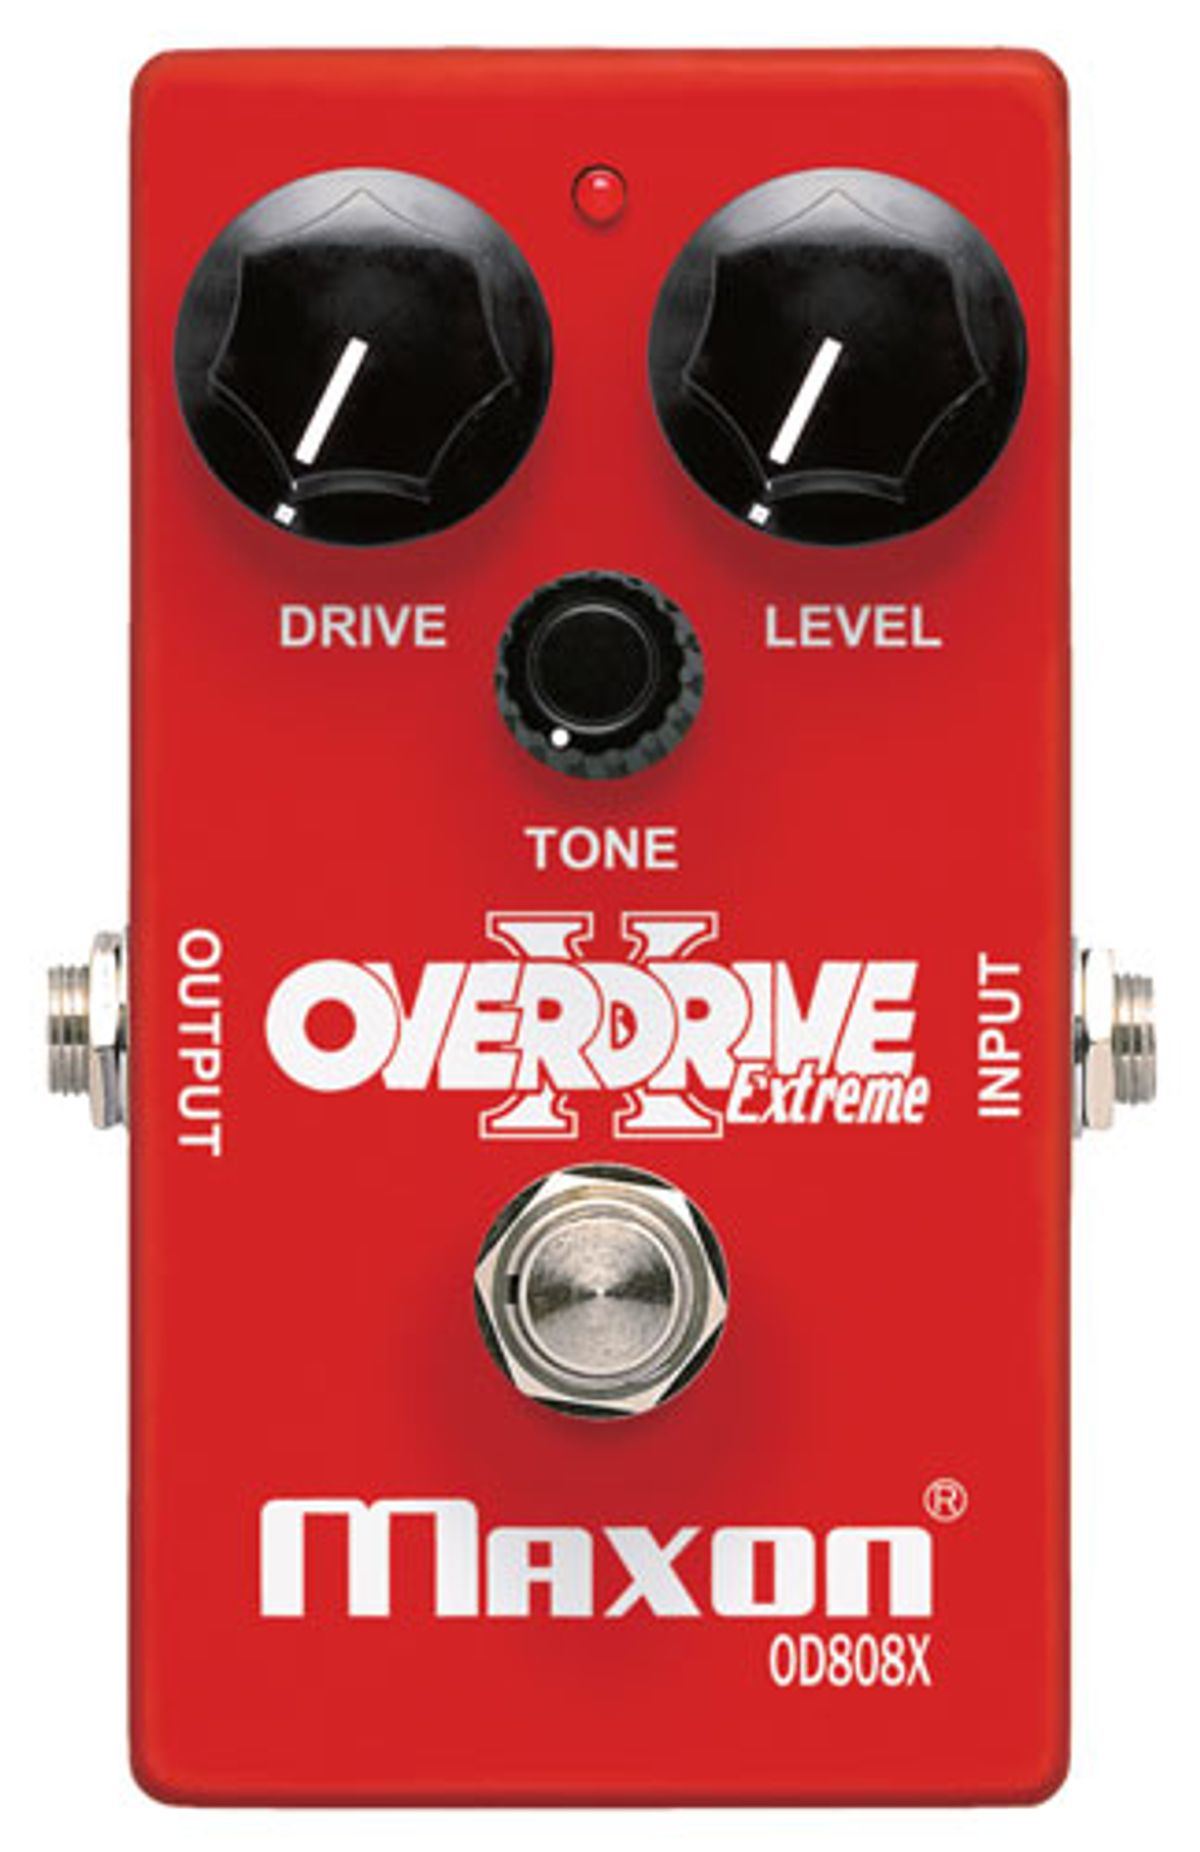 Maxon Releases the OD808X Overdrive Extreme